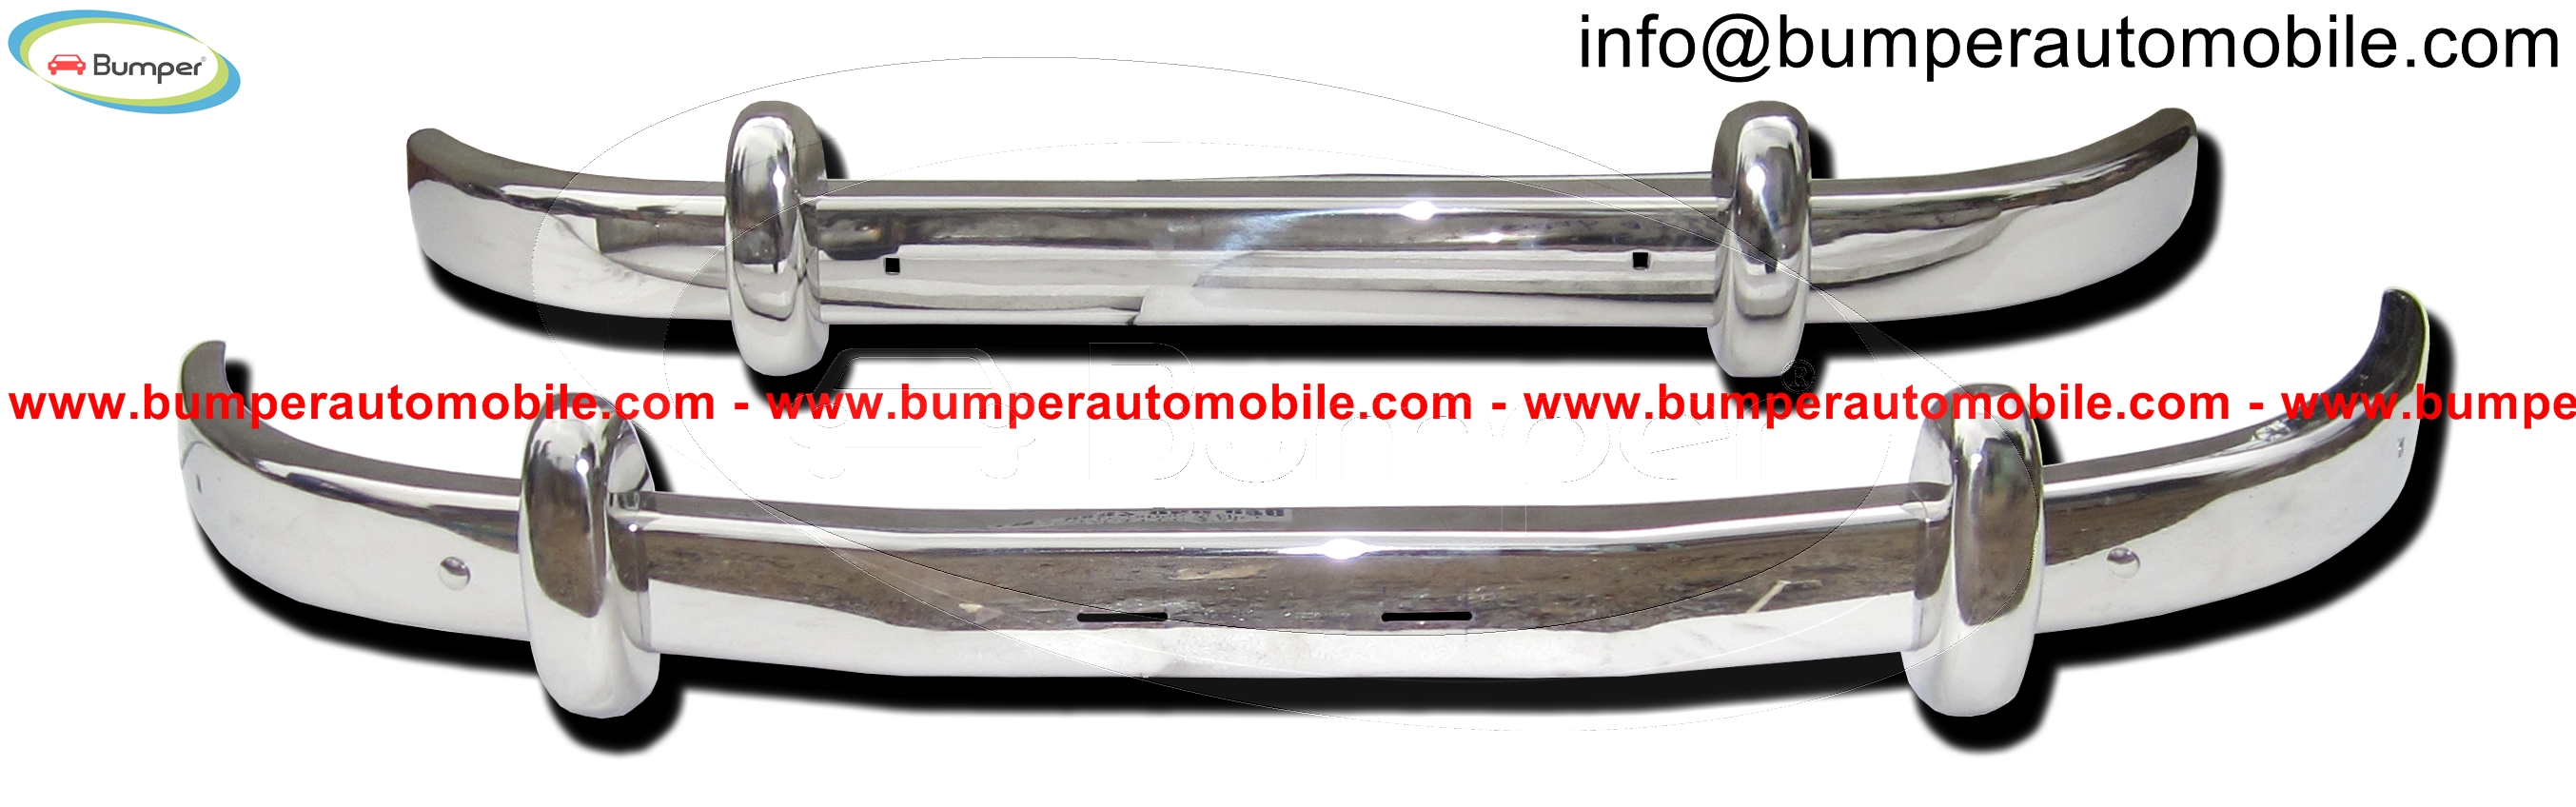 Saab 93 bumpers (1956-1959) polished stainless steel